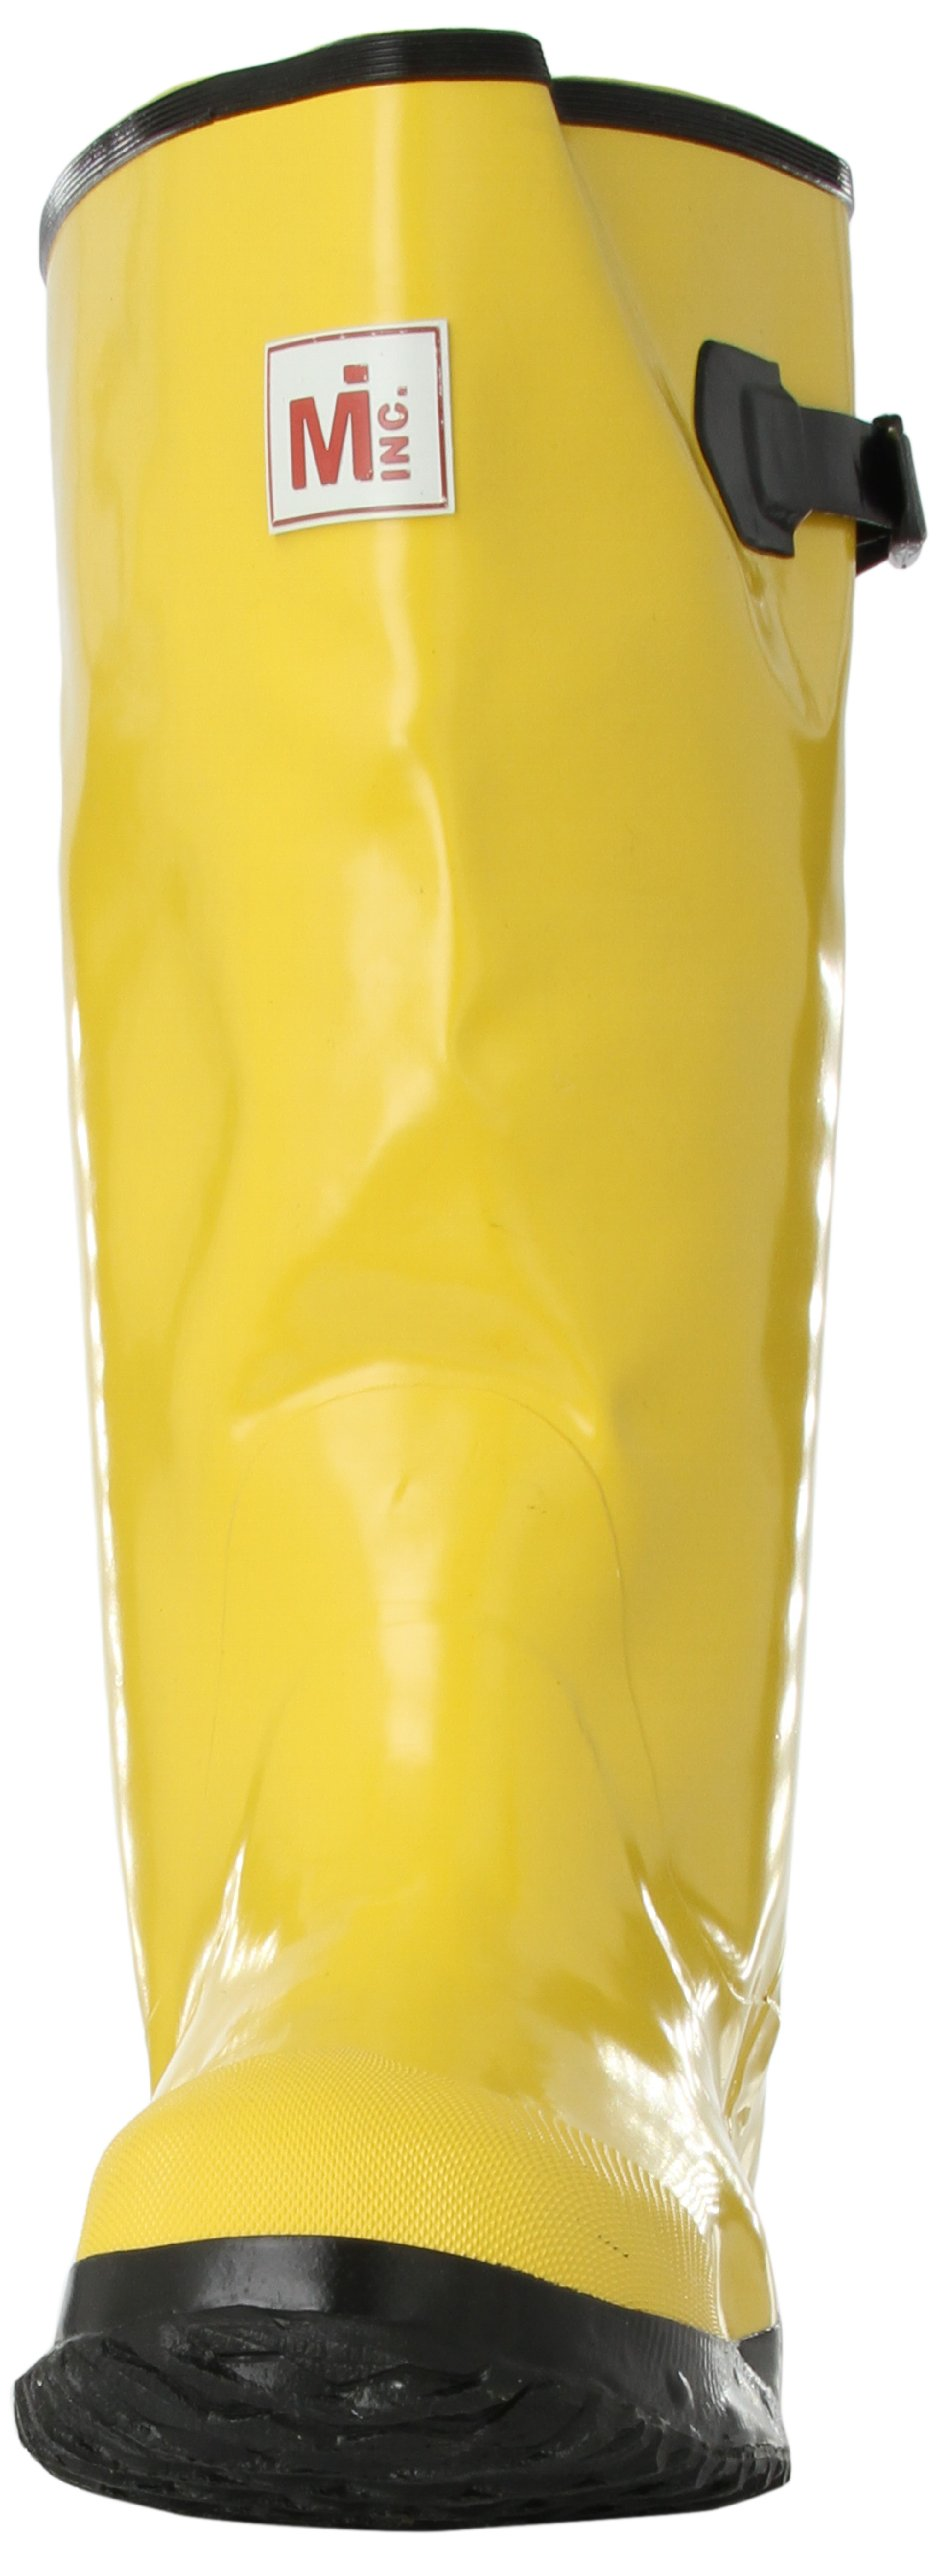 Mutual 14500 Extra Wide Over-The-Shoe Work Slush Boot, 17'' Height, Size 14, Yellow by Mutual Industries (Image #4)